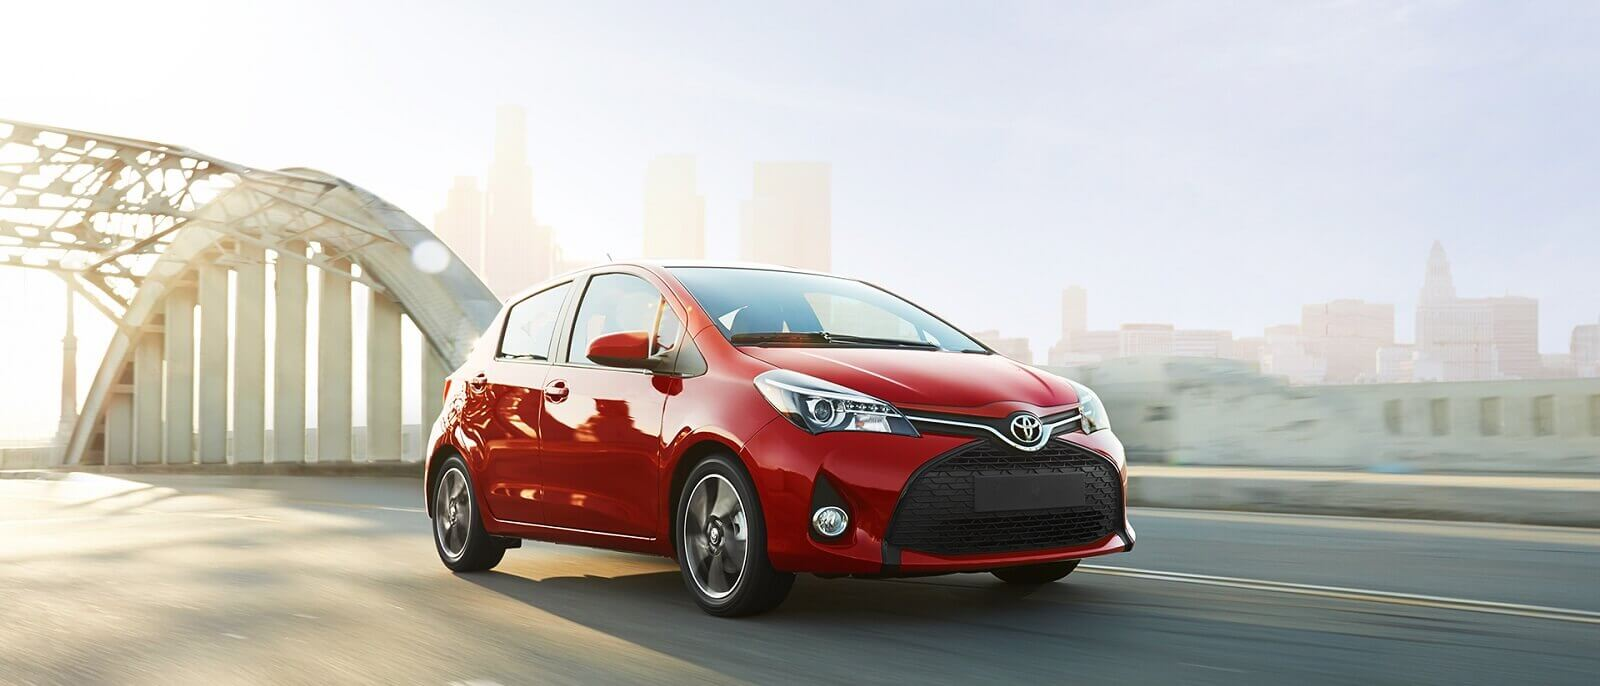 2017 Toyota Yaris in the city